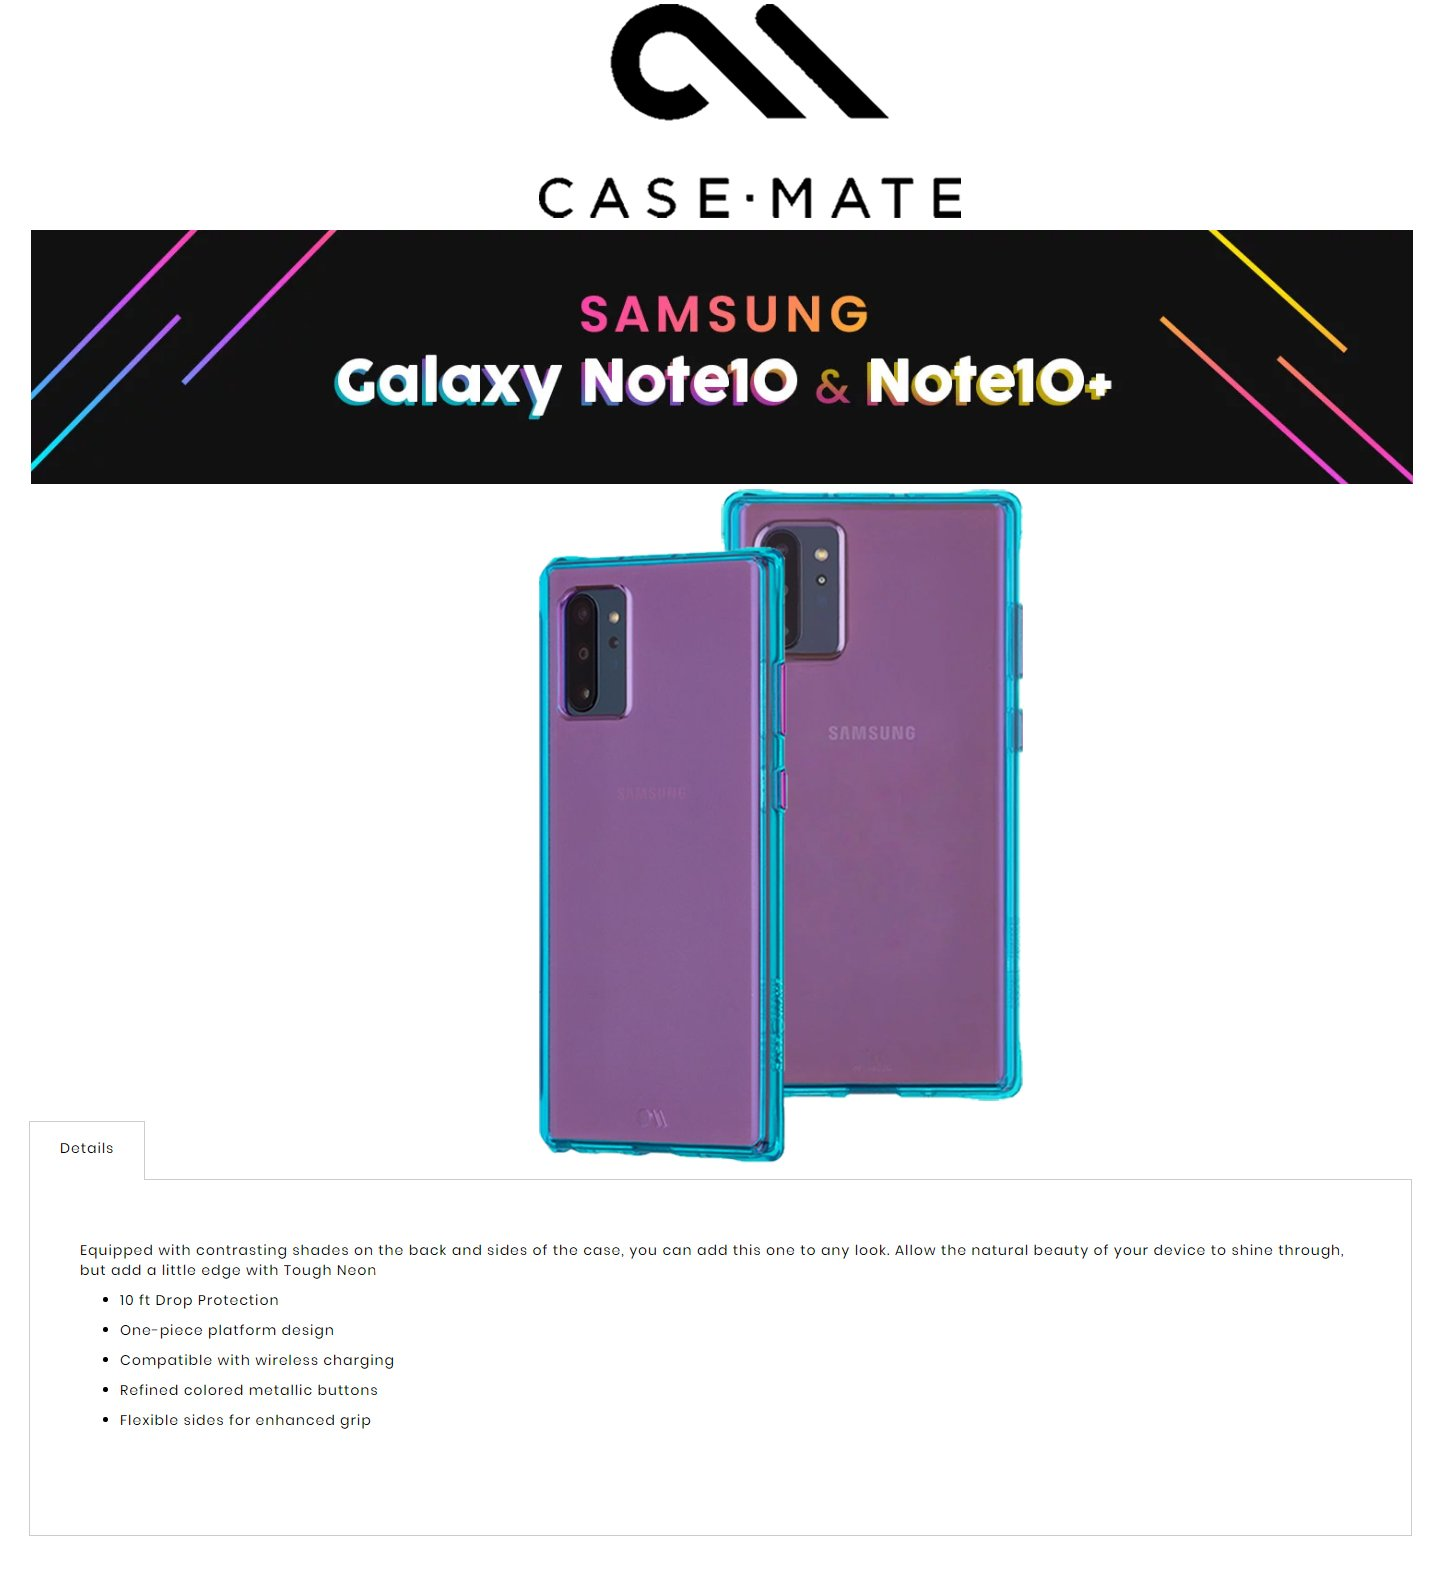 /Otterbox/846127186933/1-DES-fx-case-mate-tough-neon-samsung-galaxy-note-10-plus-purple-turquoise-color-846127186902-forexengineer-authorised-malaysia-retailer